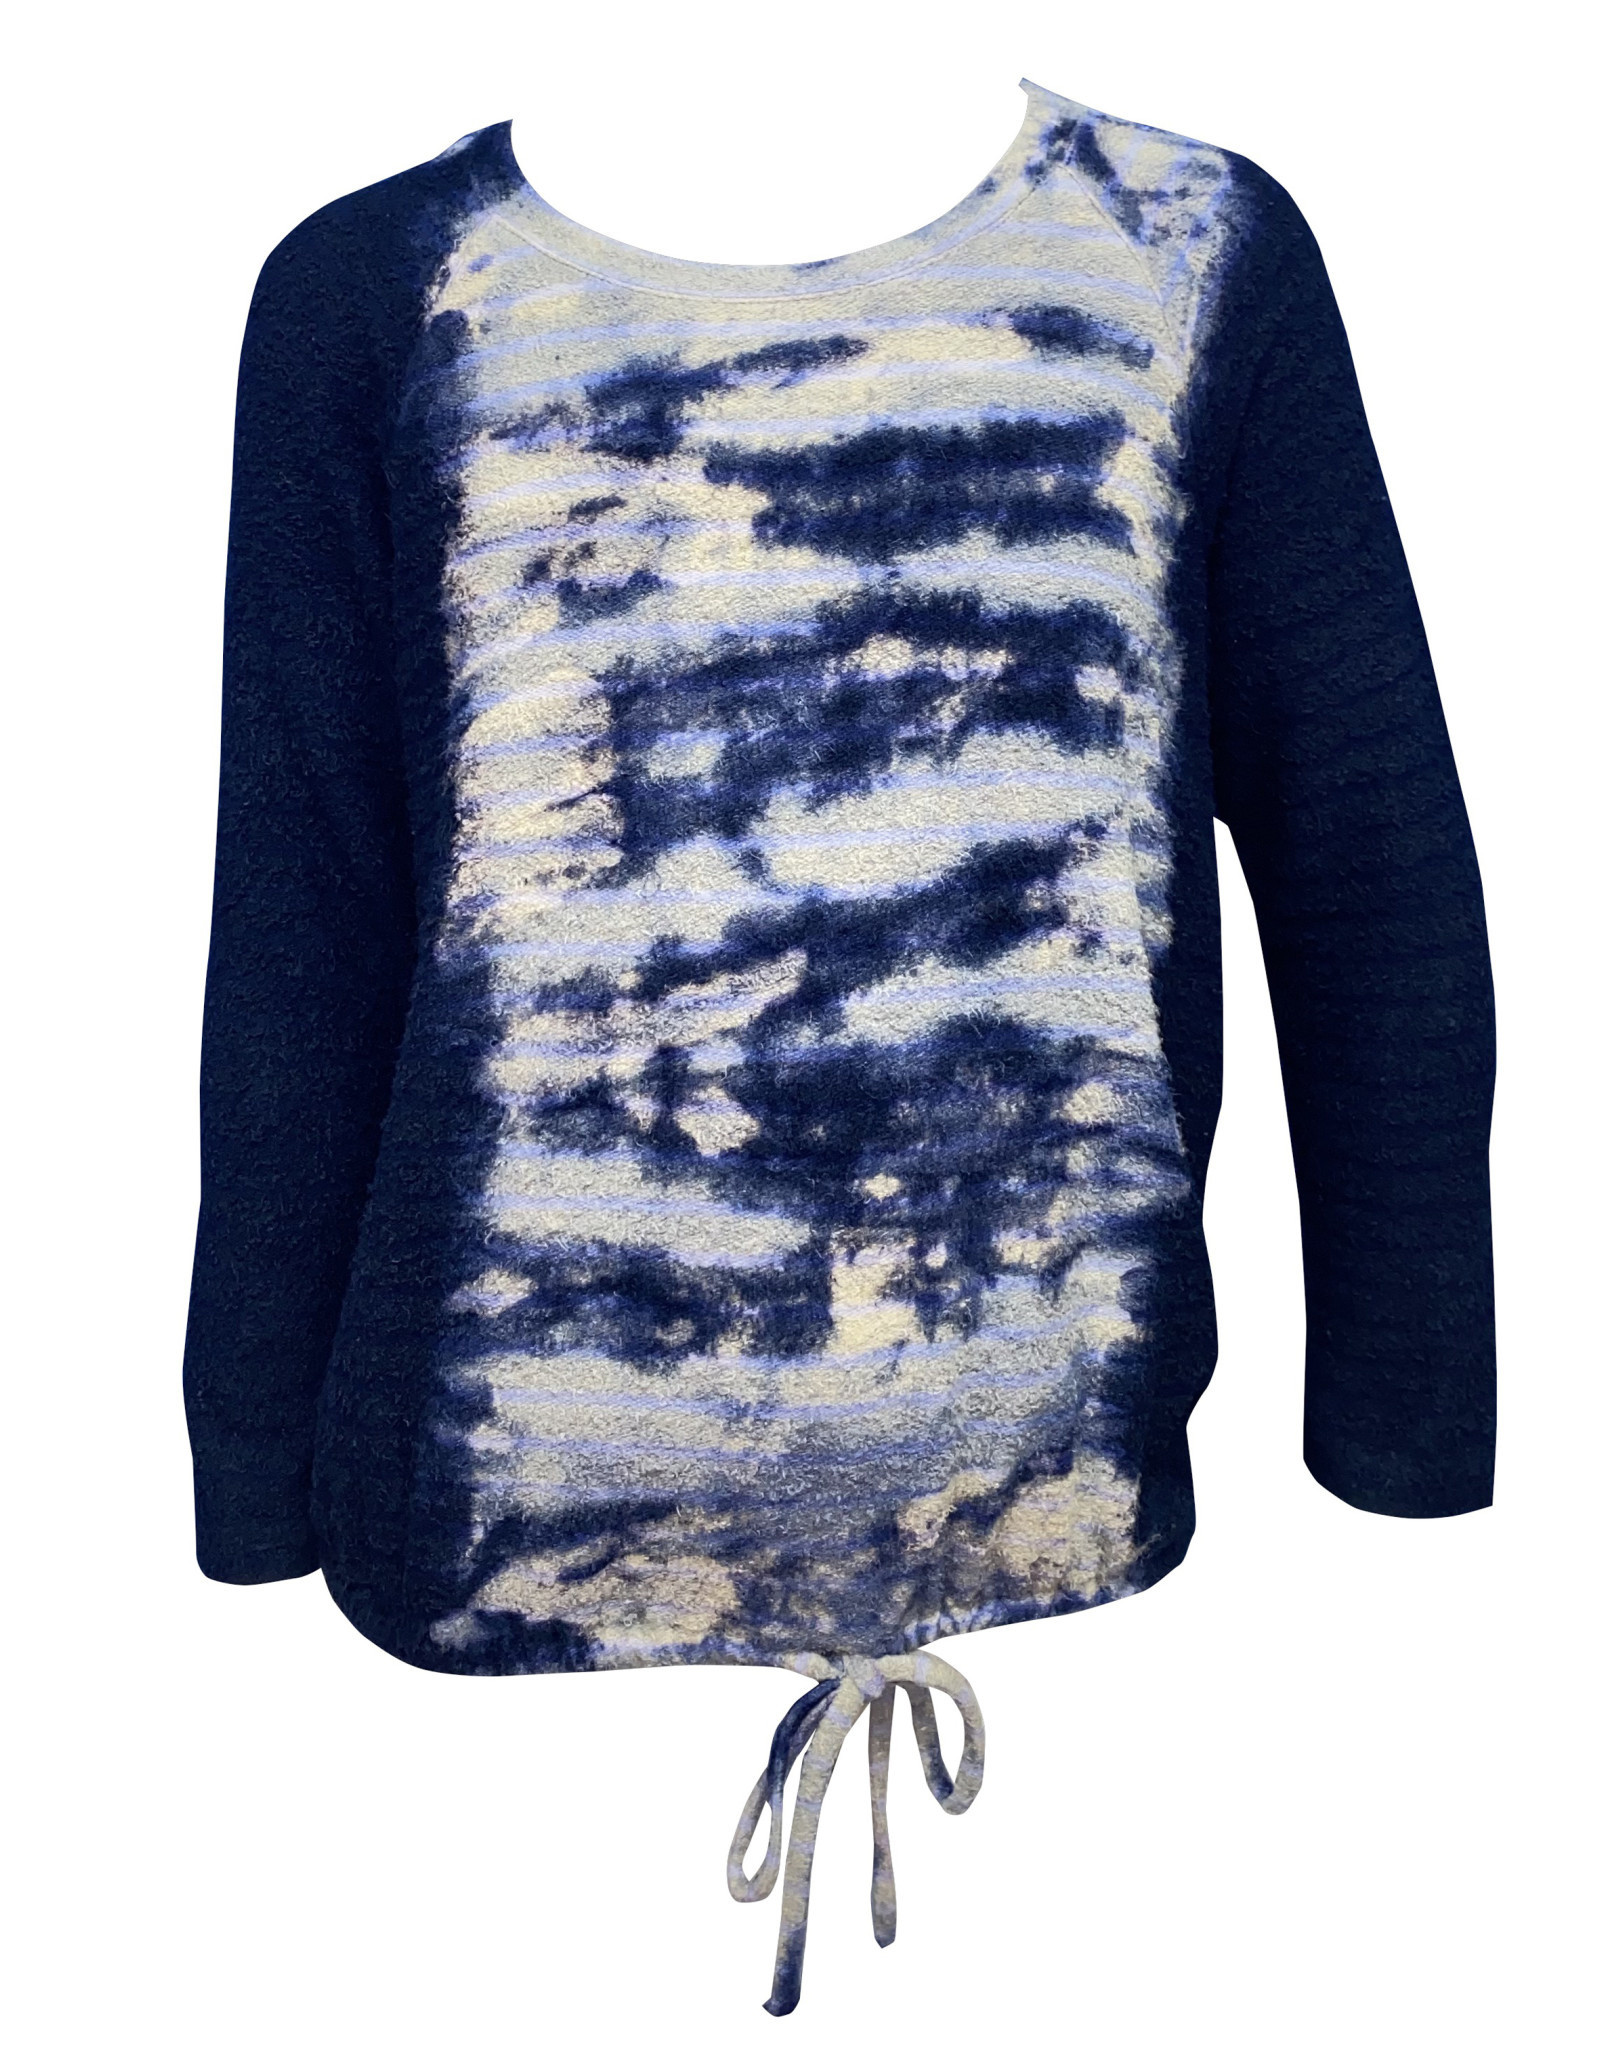 ERGE Long Sleeve Tie Dye Top, Bubbles